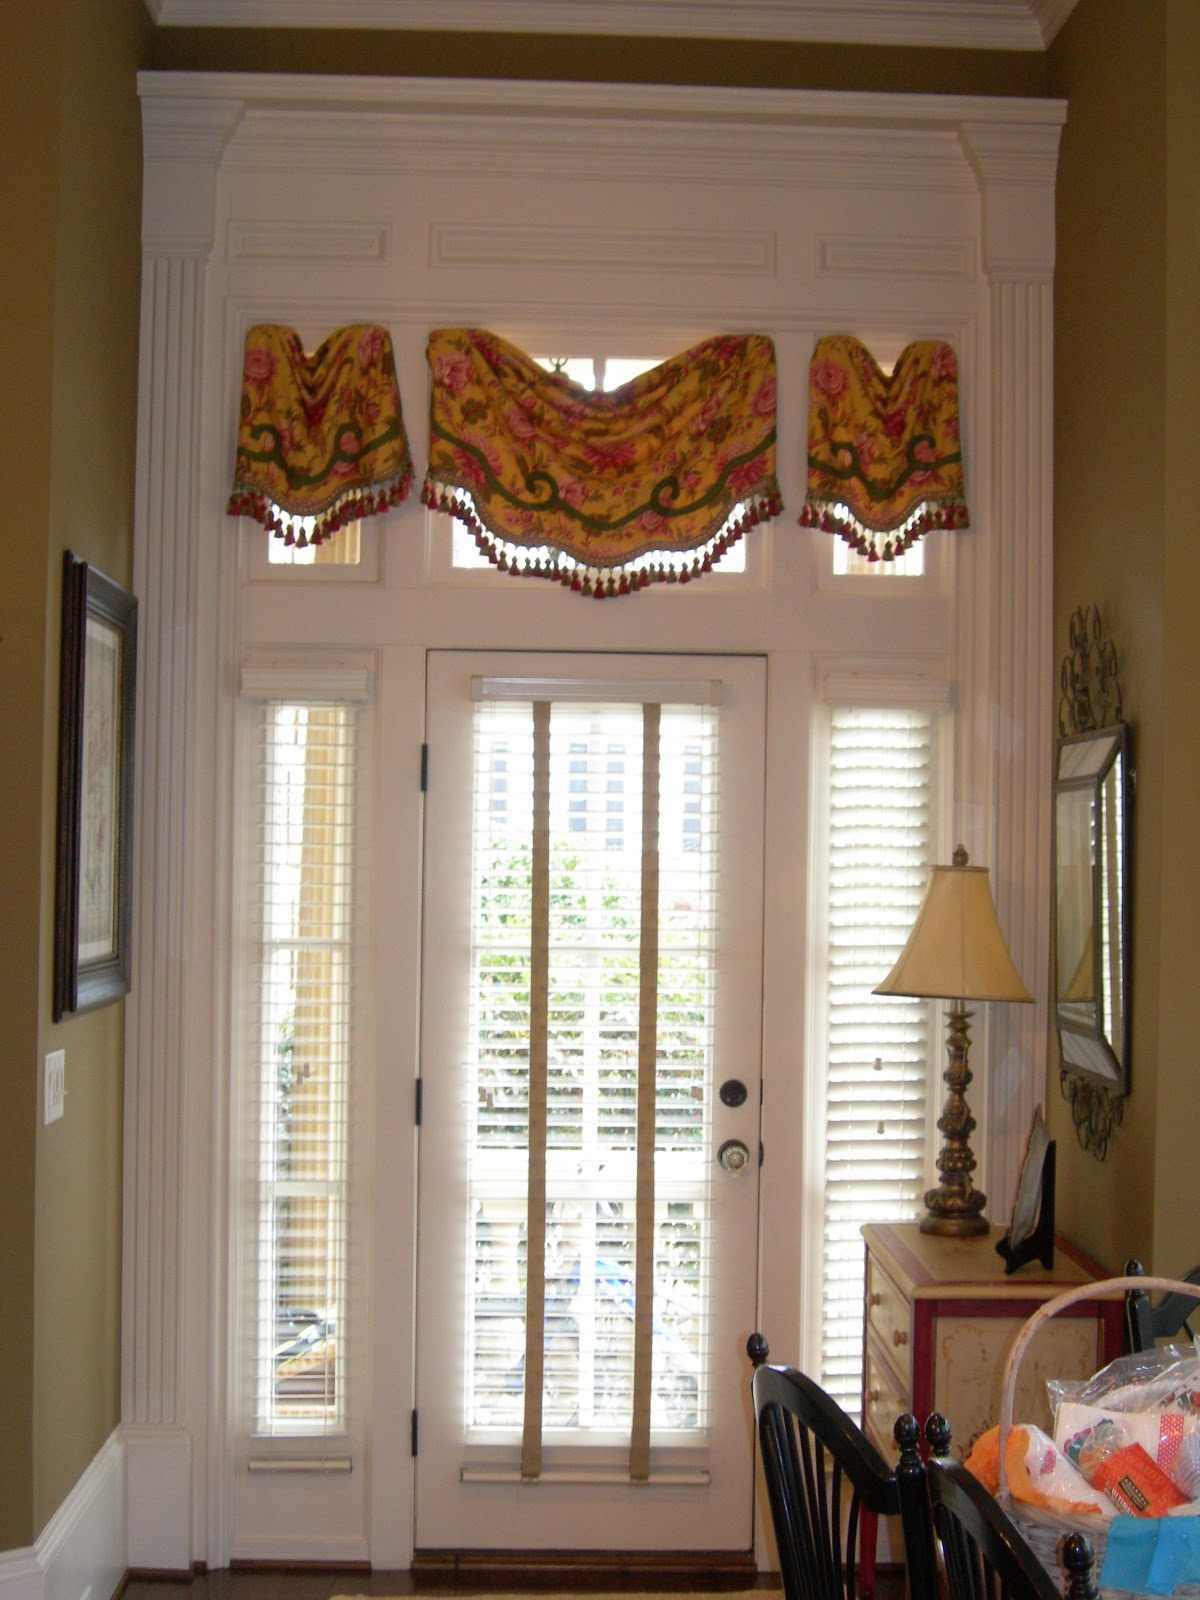 Youngblood interiors treatments for transom windows for Transom windows